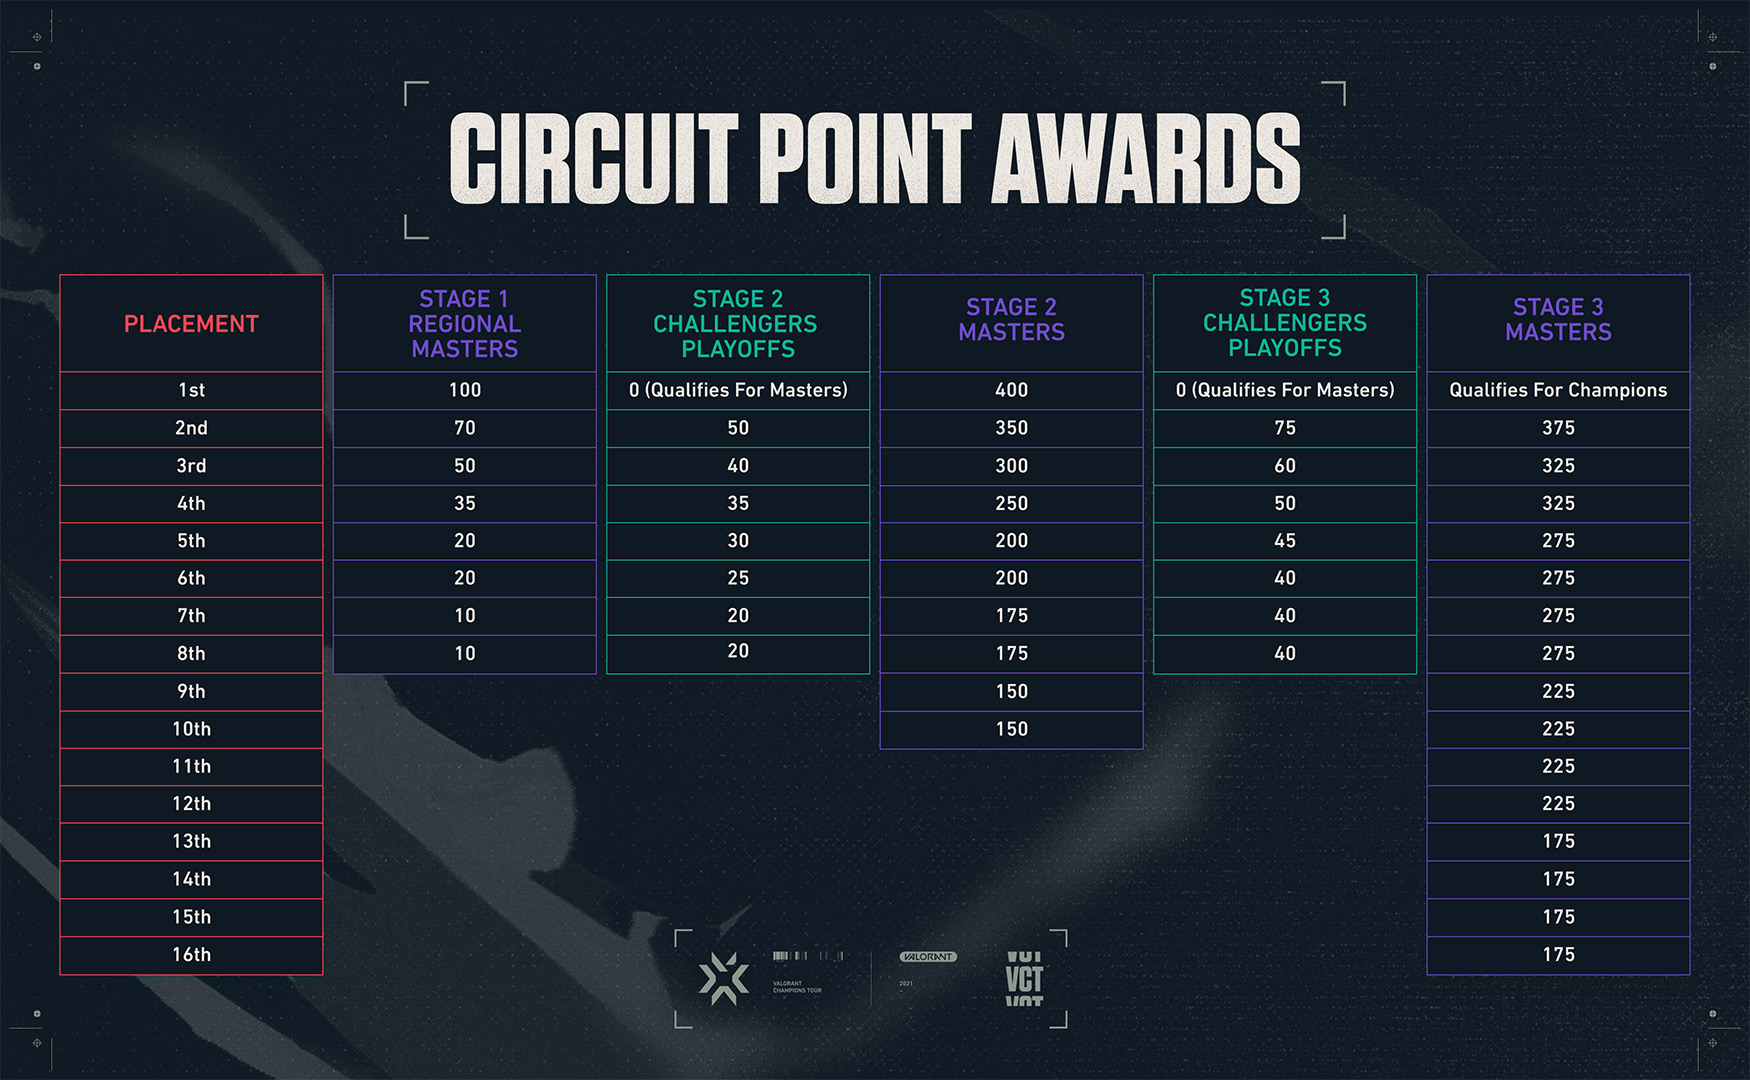 04_Circuit_Point_Awards_March_26_21.jpg